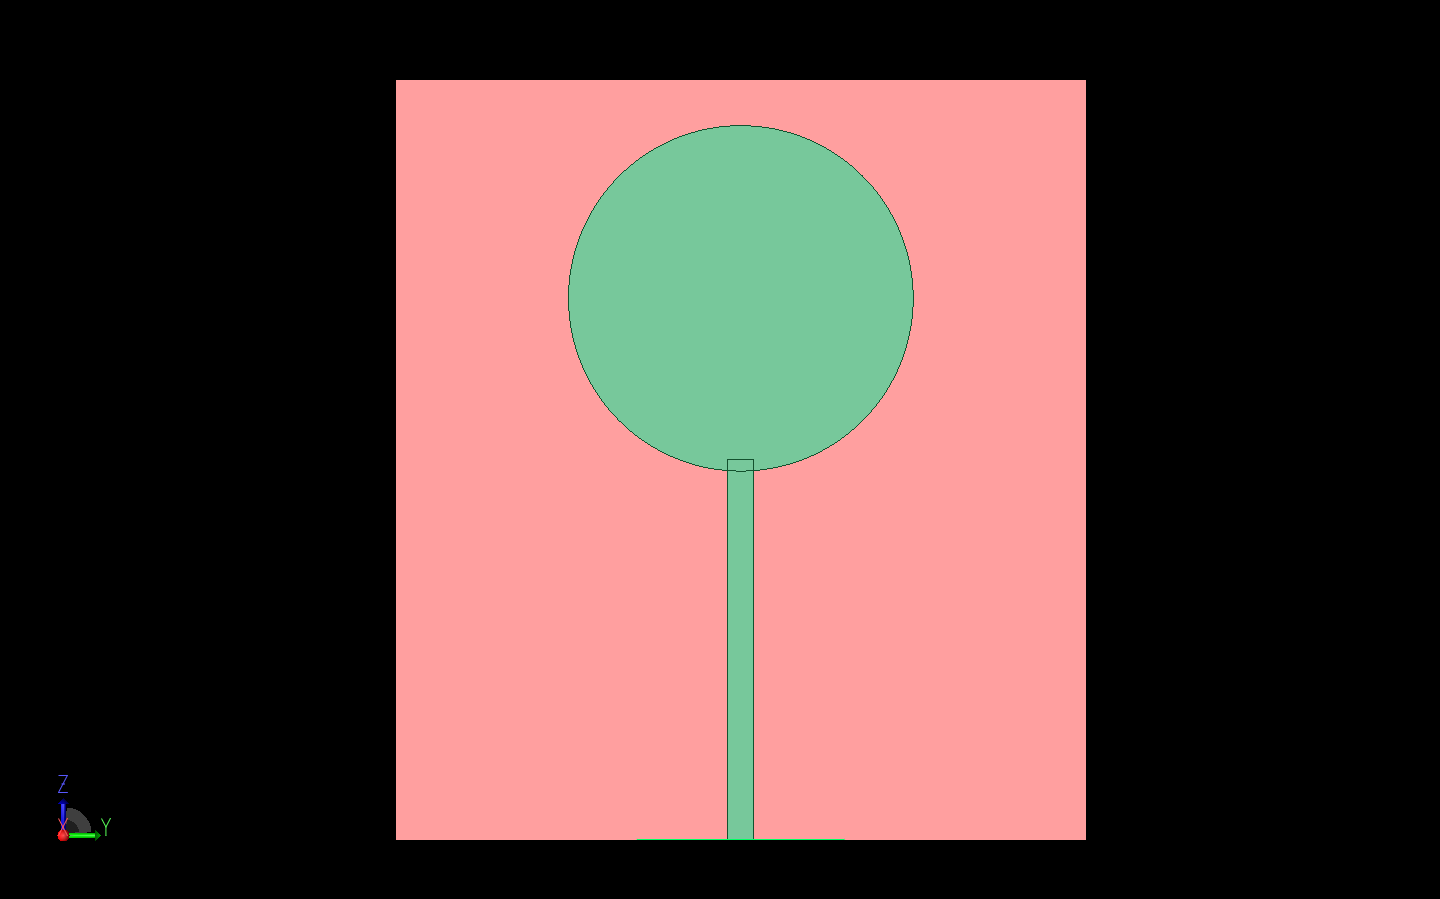 Figure 3: The UWB monopole disk antenna is shown as a CAD model in XFdtd.